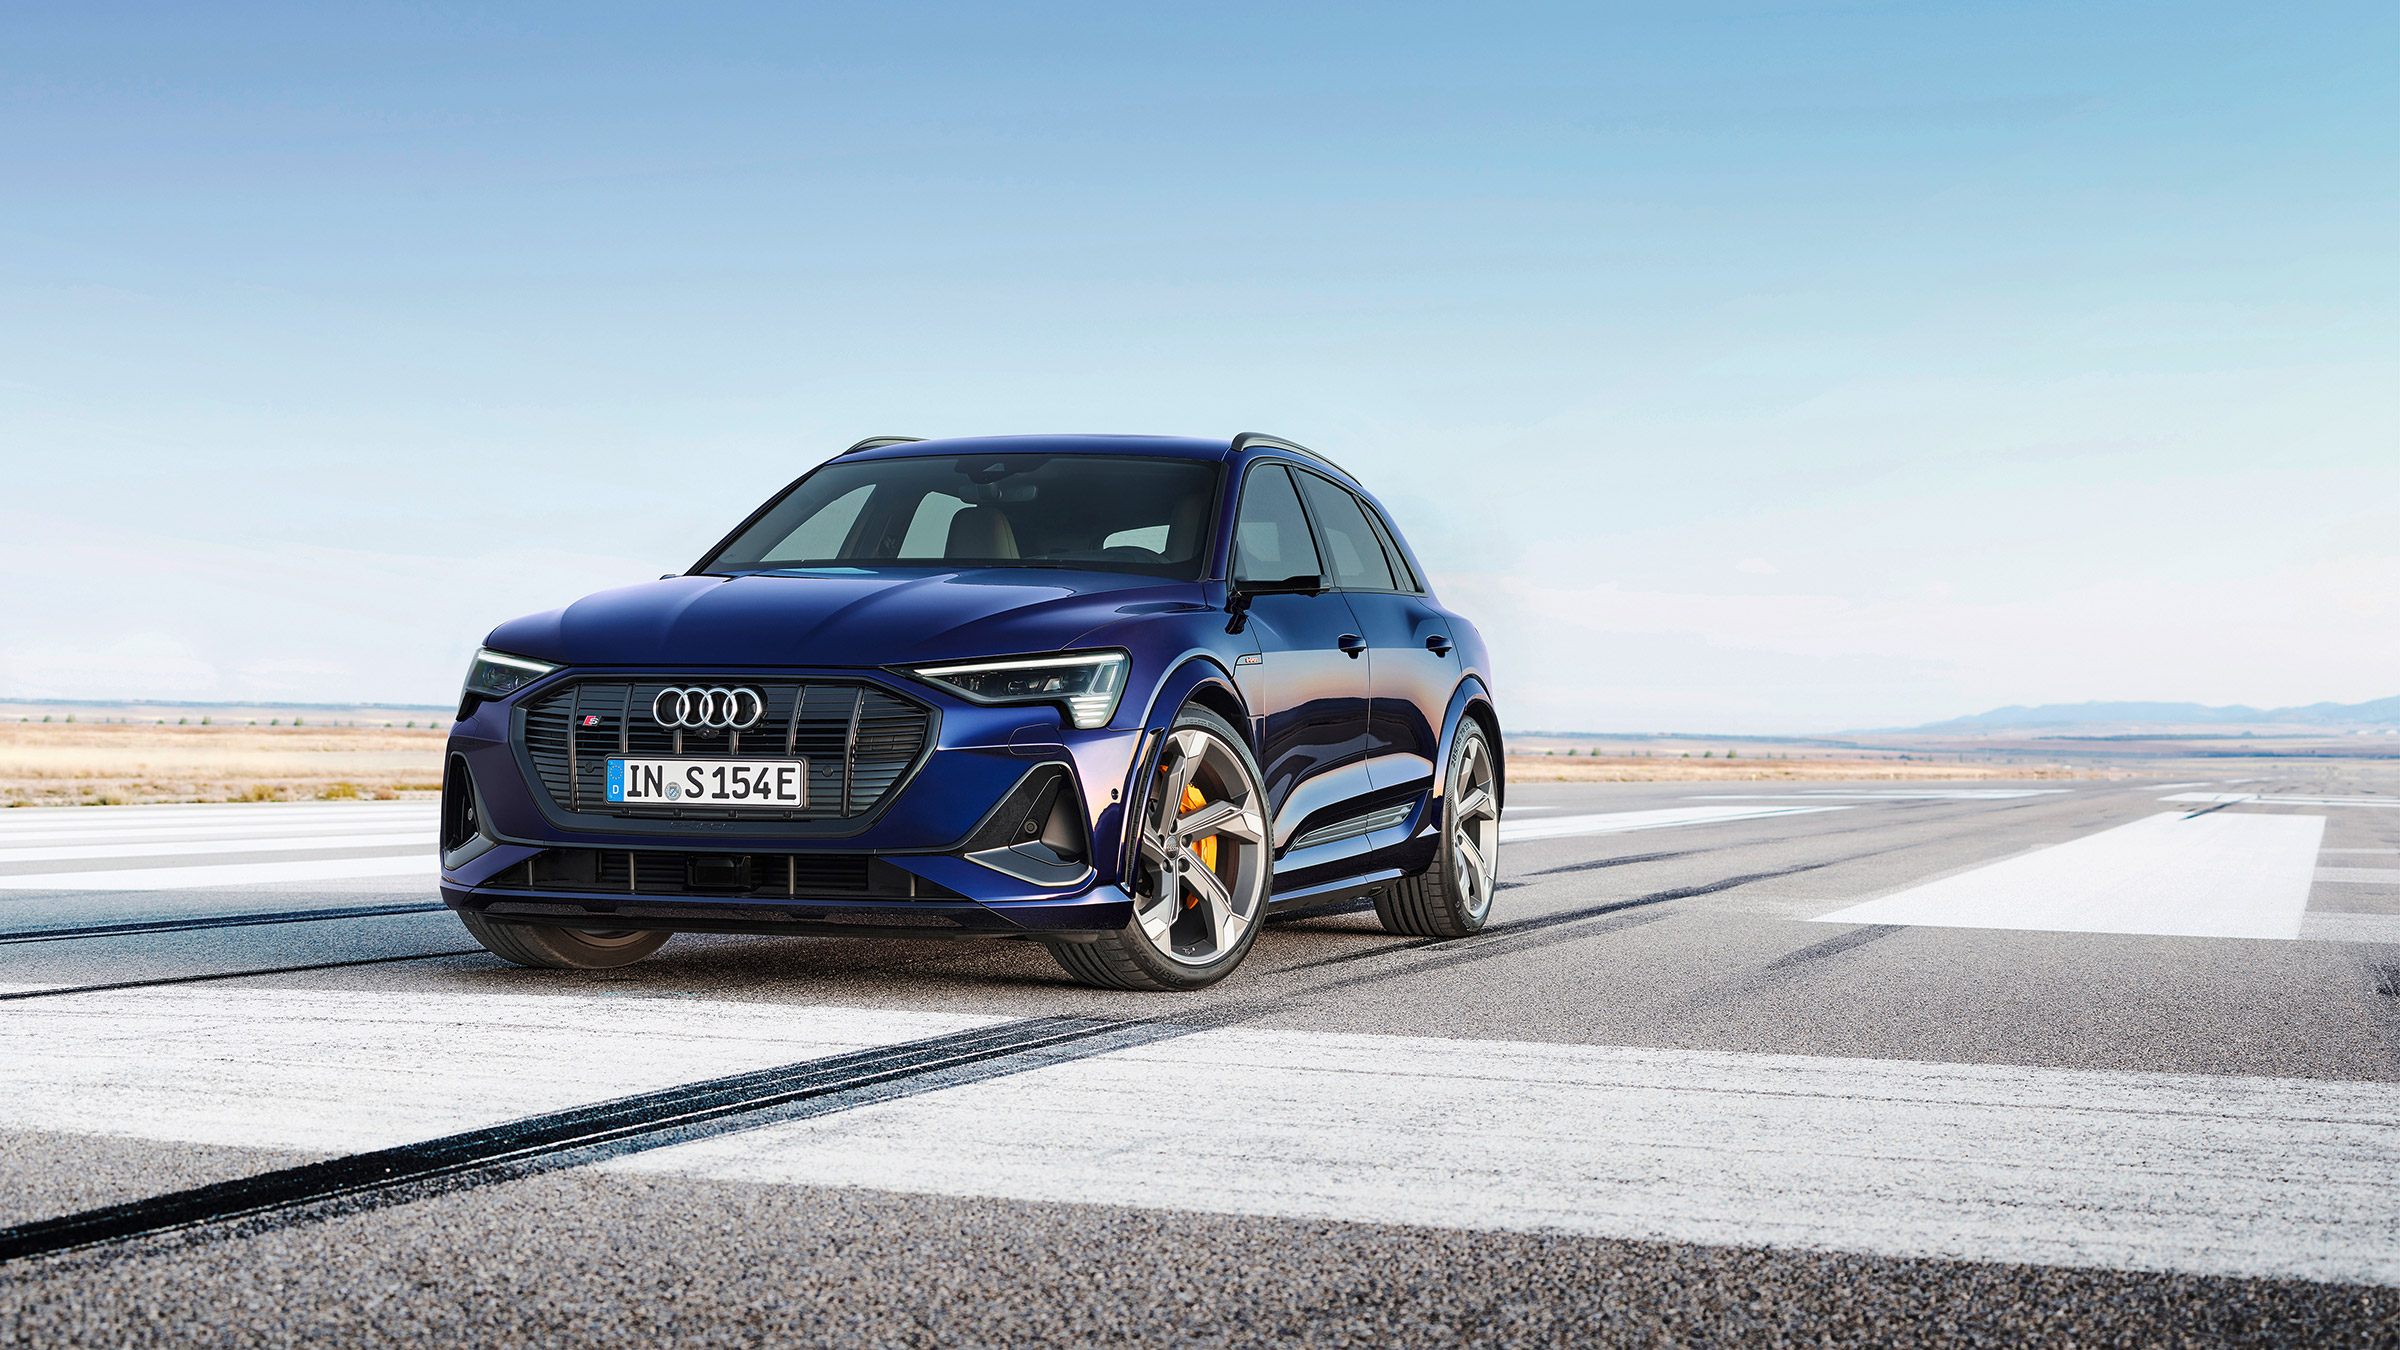 New 496bhp Audi e-tron S revealed – Audi's first high-performance EV